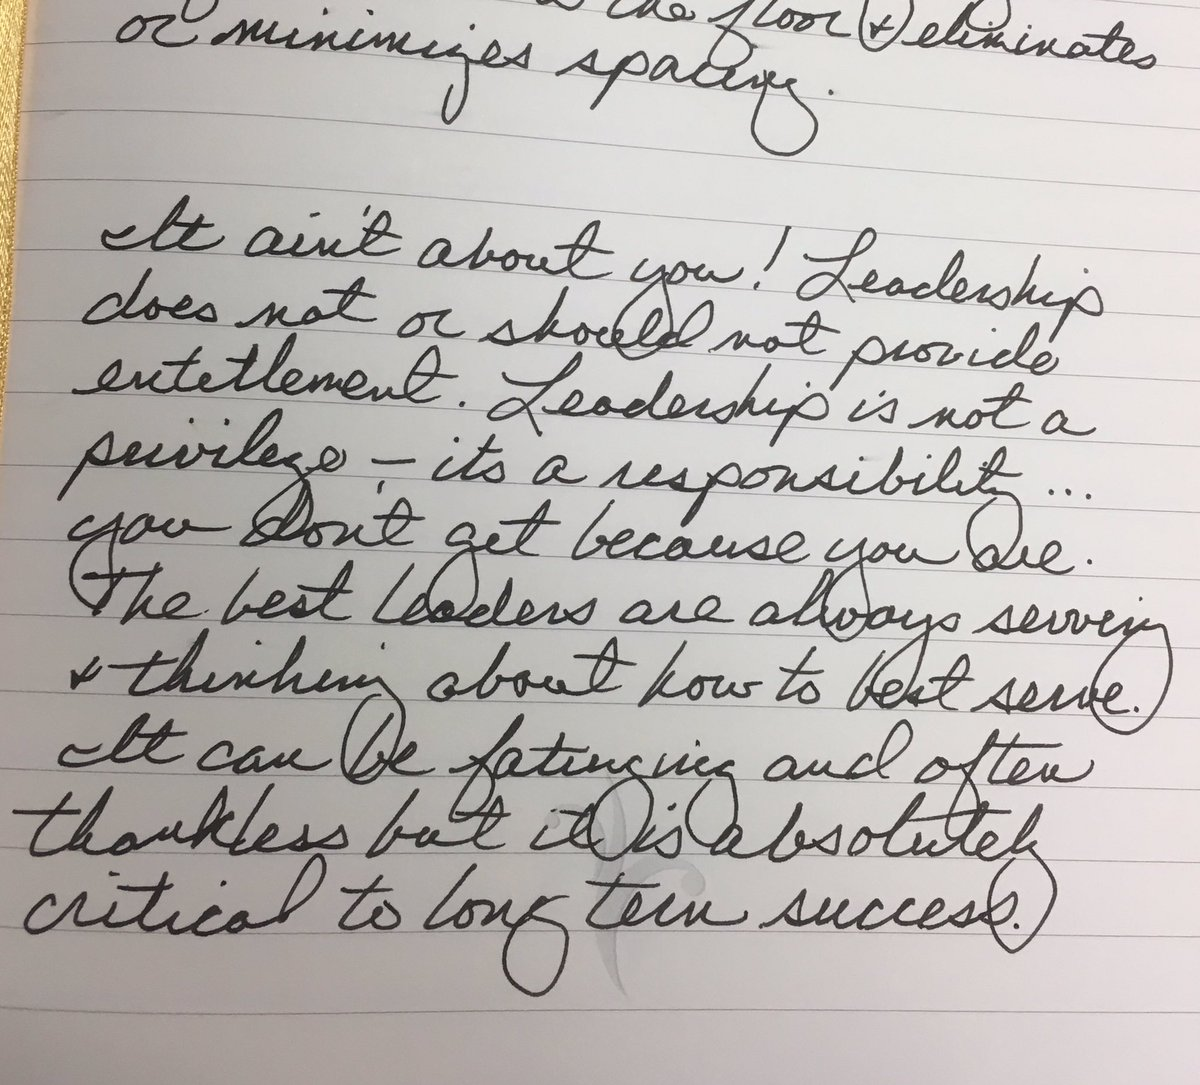 Journal entry today on #leadership